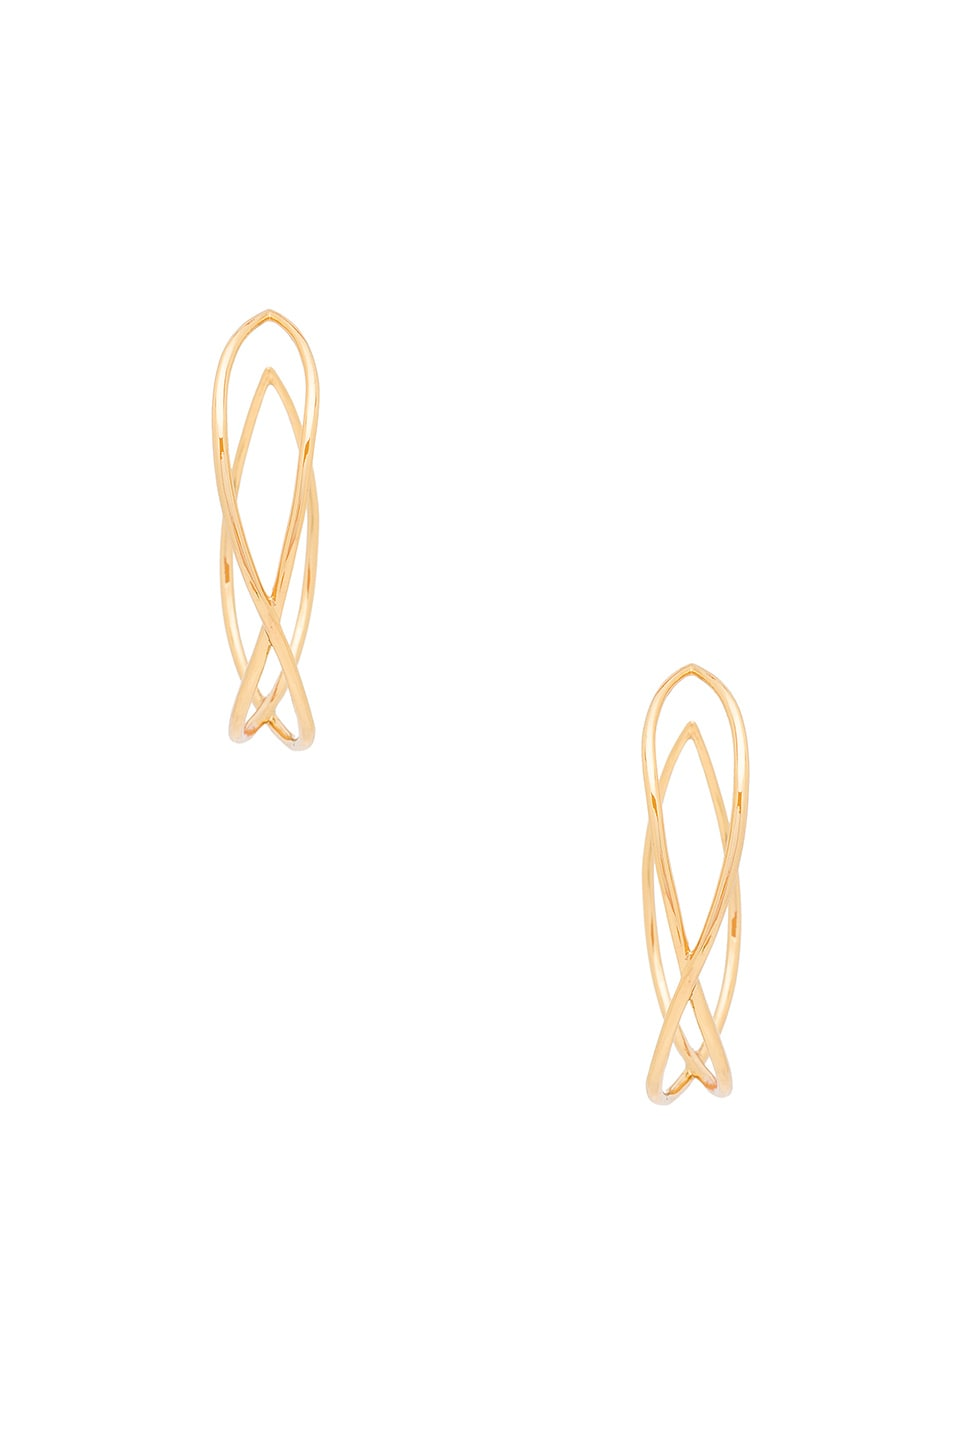 gorjana Autumn Hoop Earrings in Gold